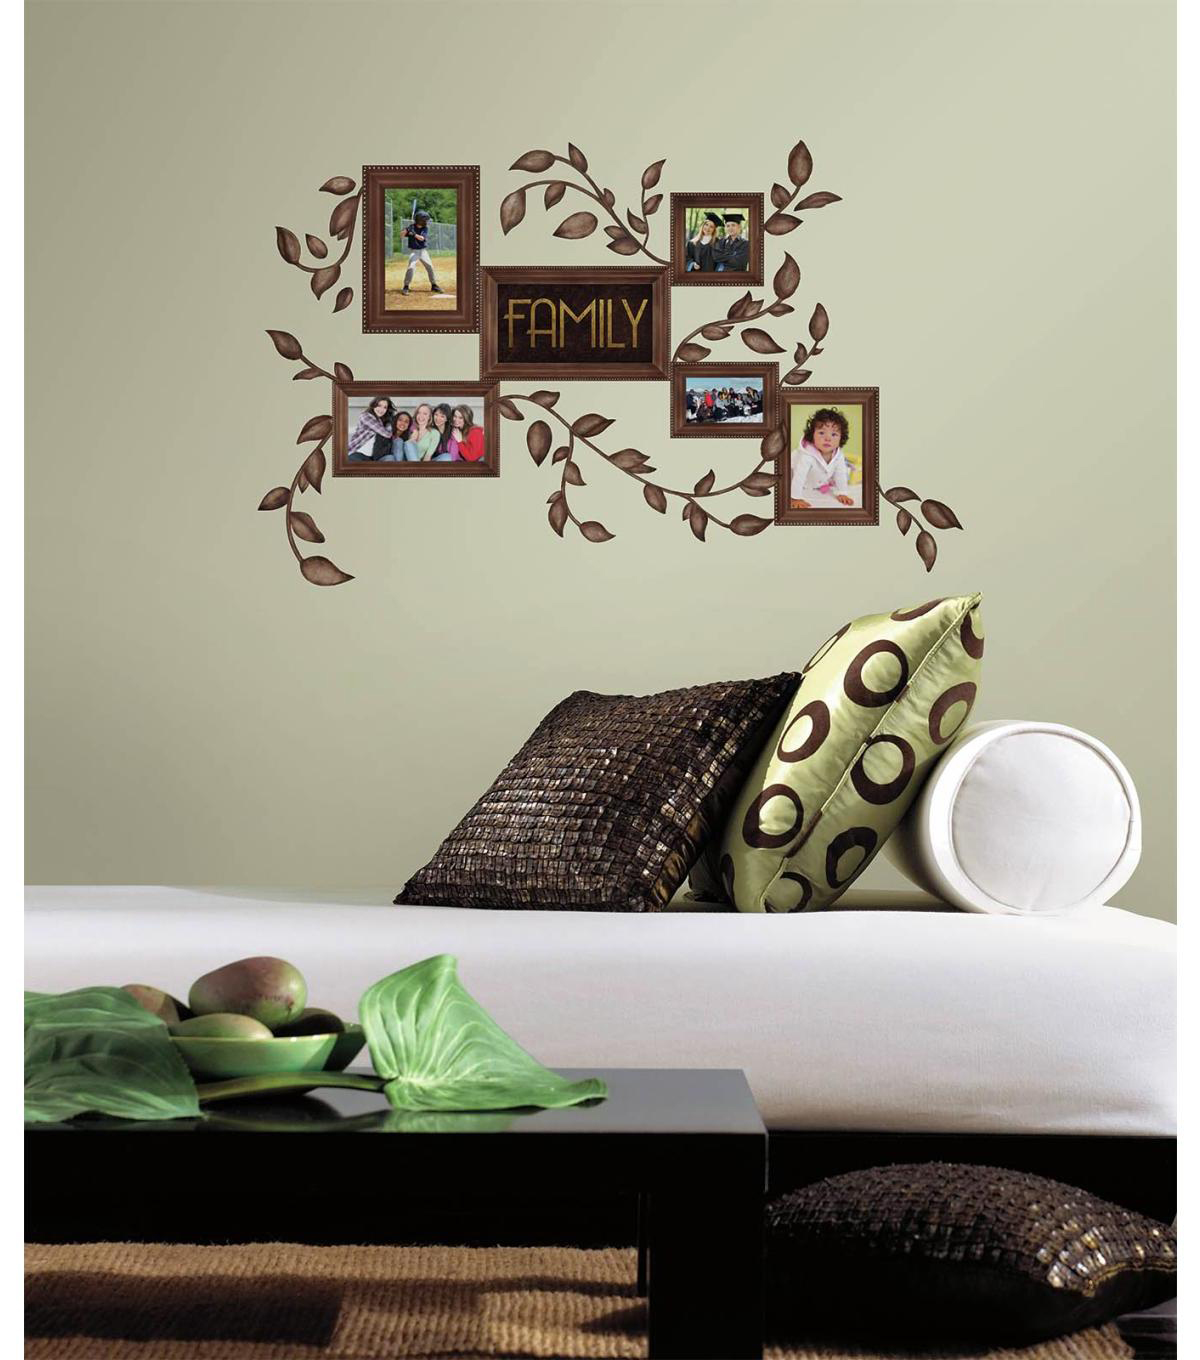 York Wallcoverings Wall Decals-Family Frames